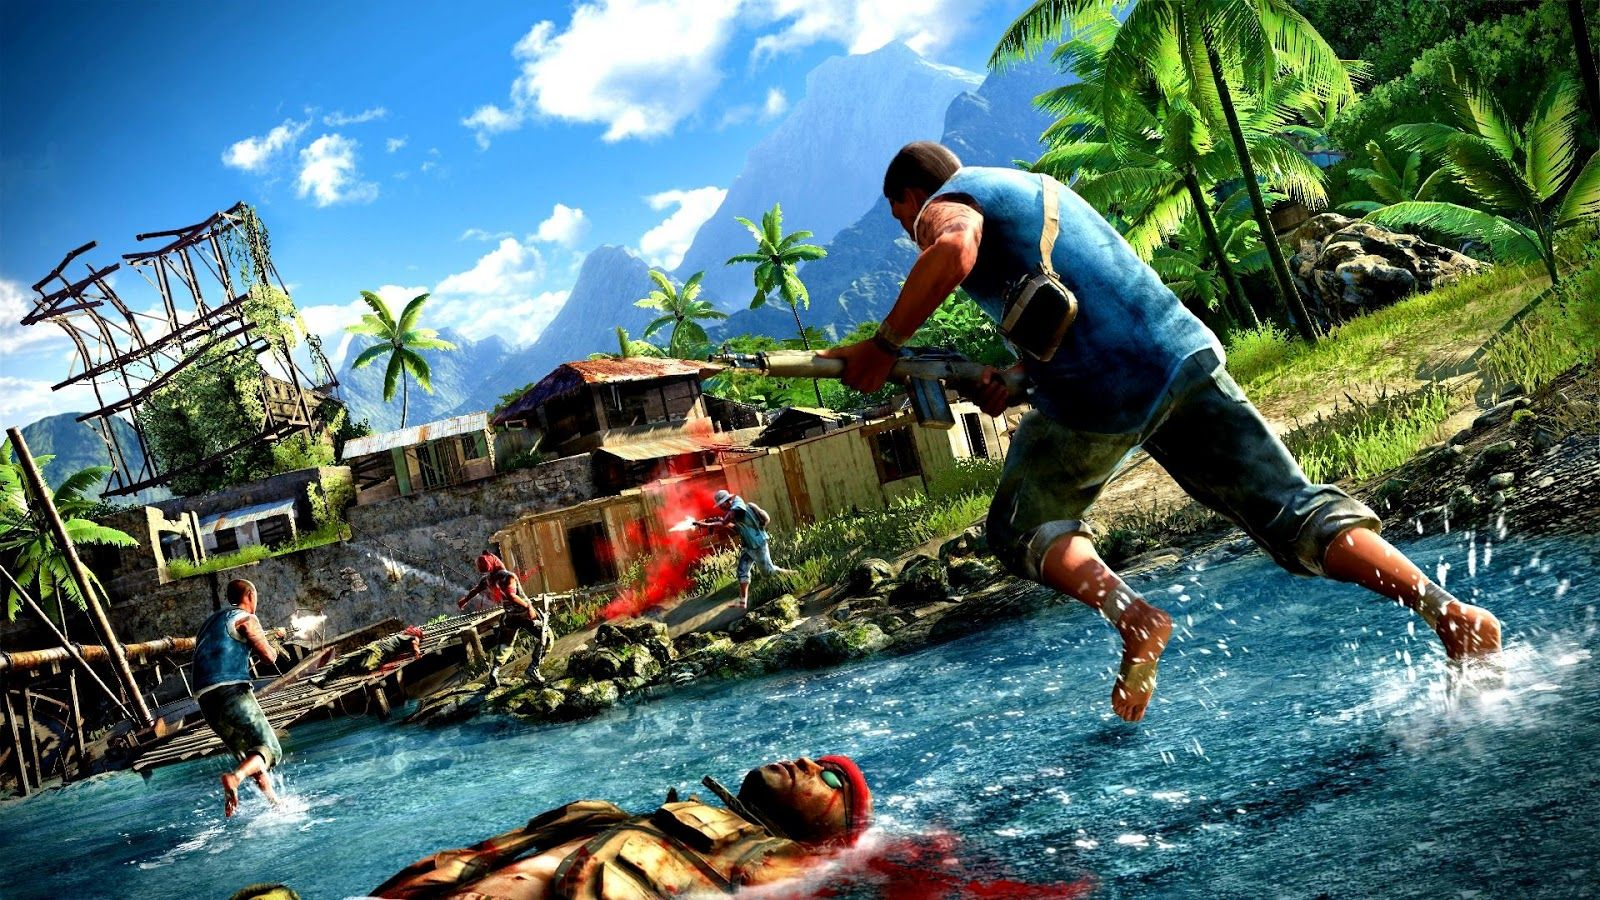 Expand Your Far Cry Experience With The Far Cry 4 Special Edition